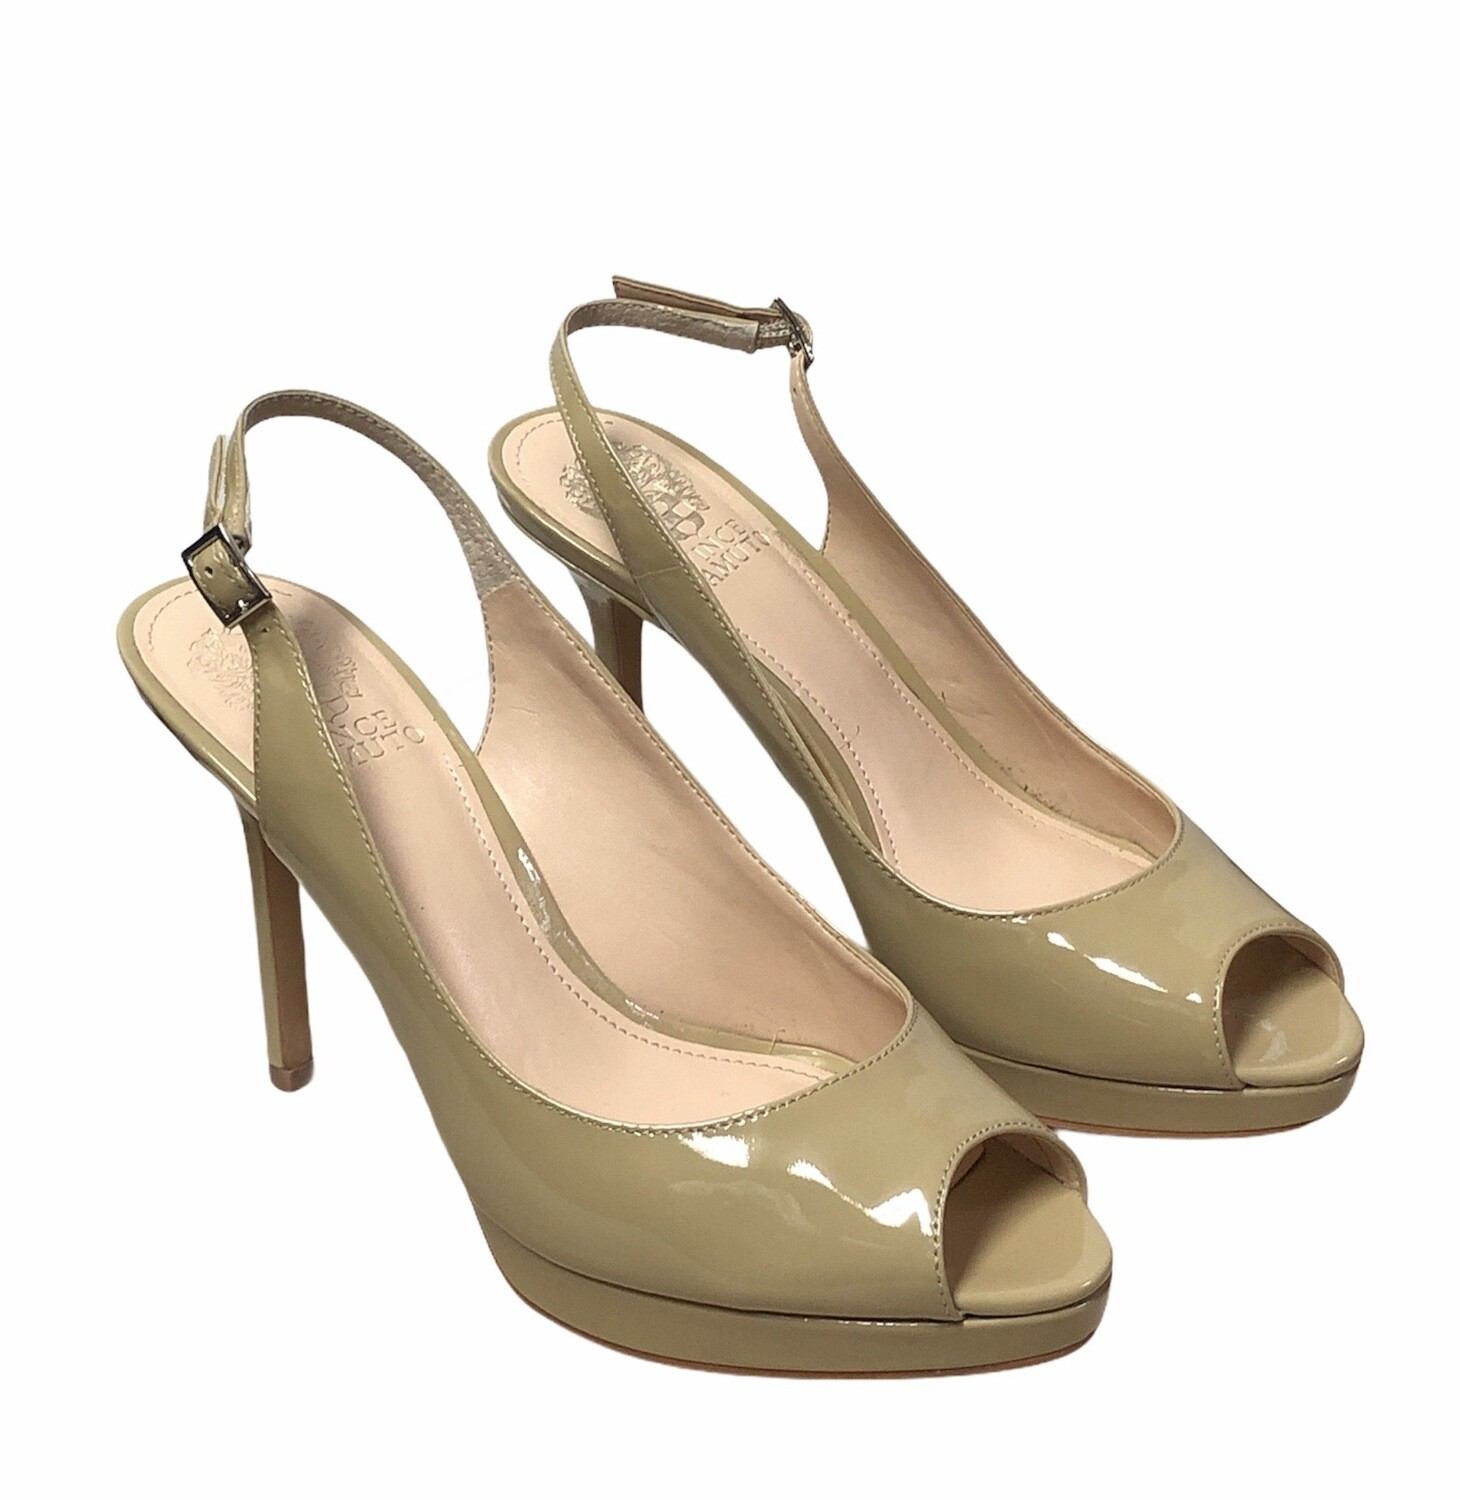 New VINCE CAMUTO Nude Patent Leather Peep Toe Slingback Heels size 8